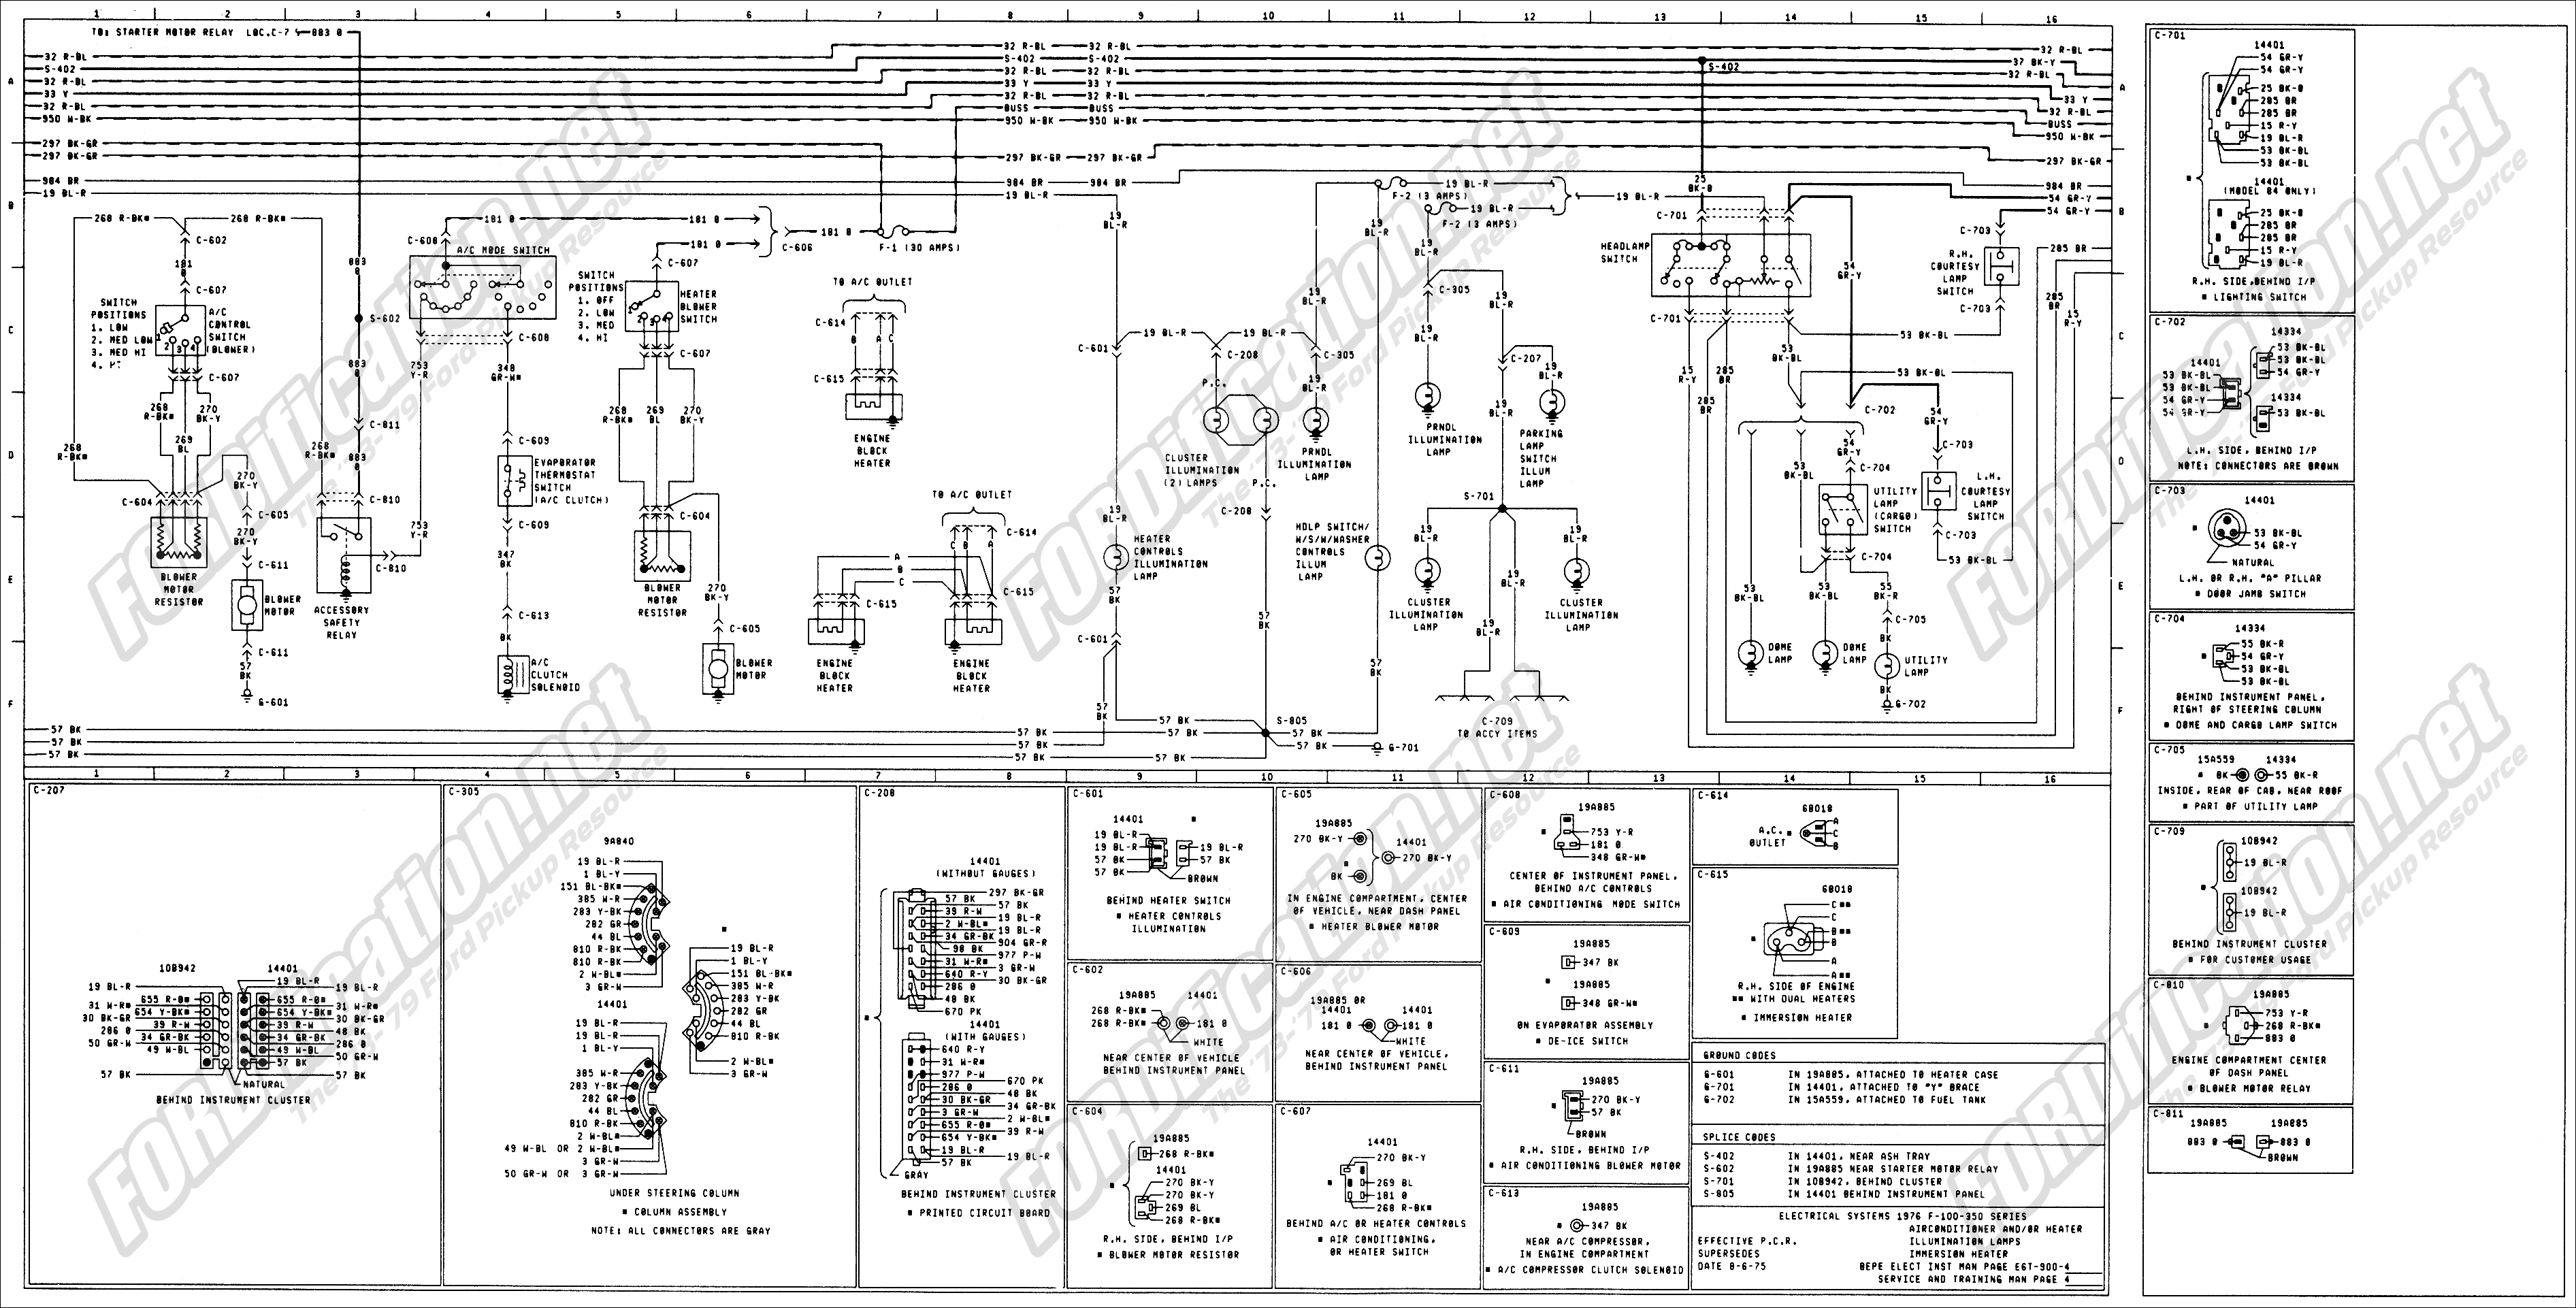 1973 1979 Ford Truck Wiring Diagrams & Schematics Fordification Net F150  Brake Light Wiring Diagram 79 F150 Wiring Diagram